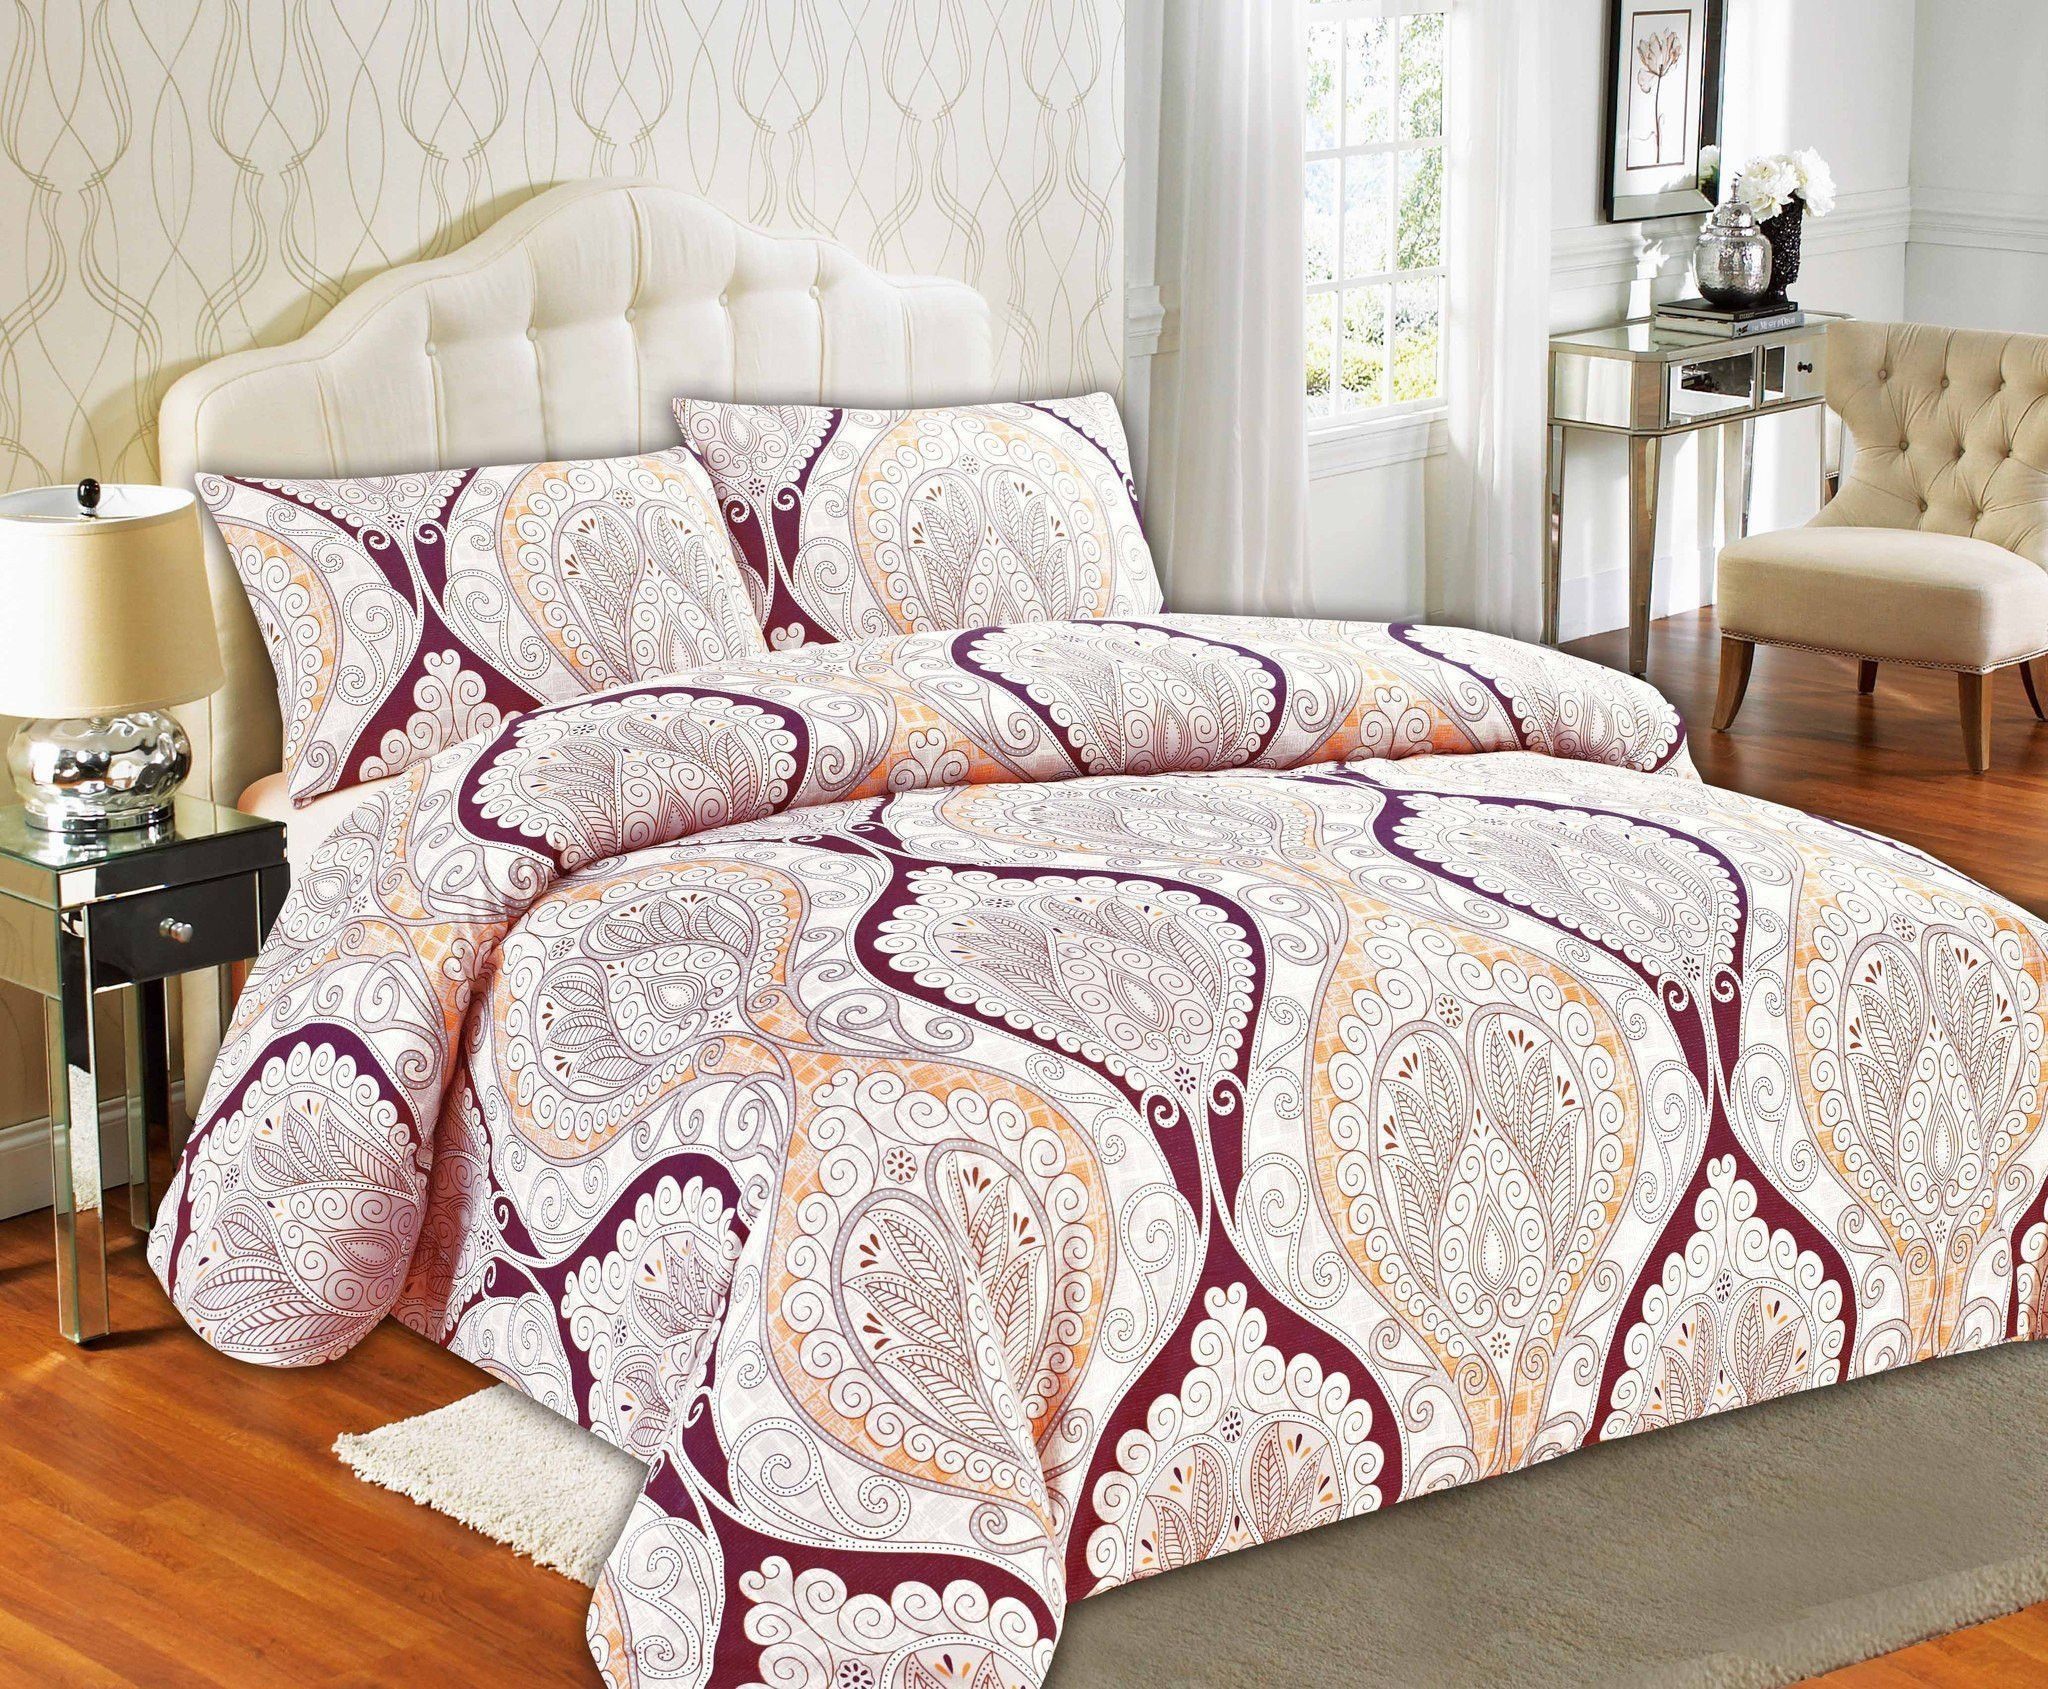 textiles will you chic faux them home shirred sets radiance comforter silk bedding rustic have and why covers duvet